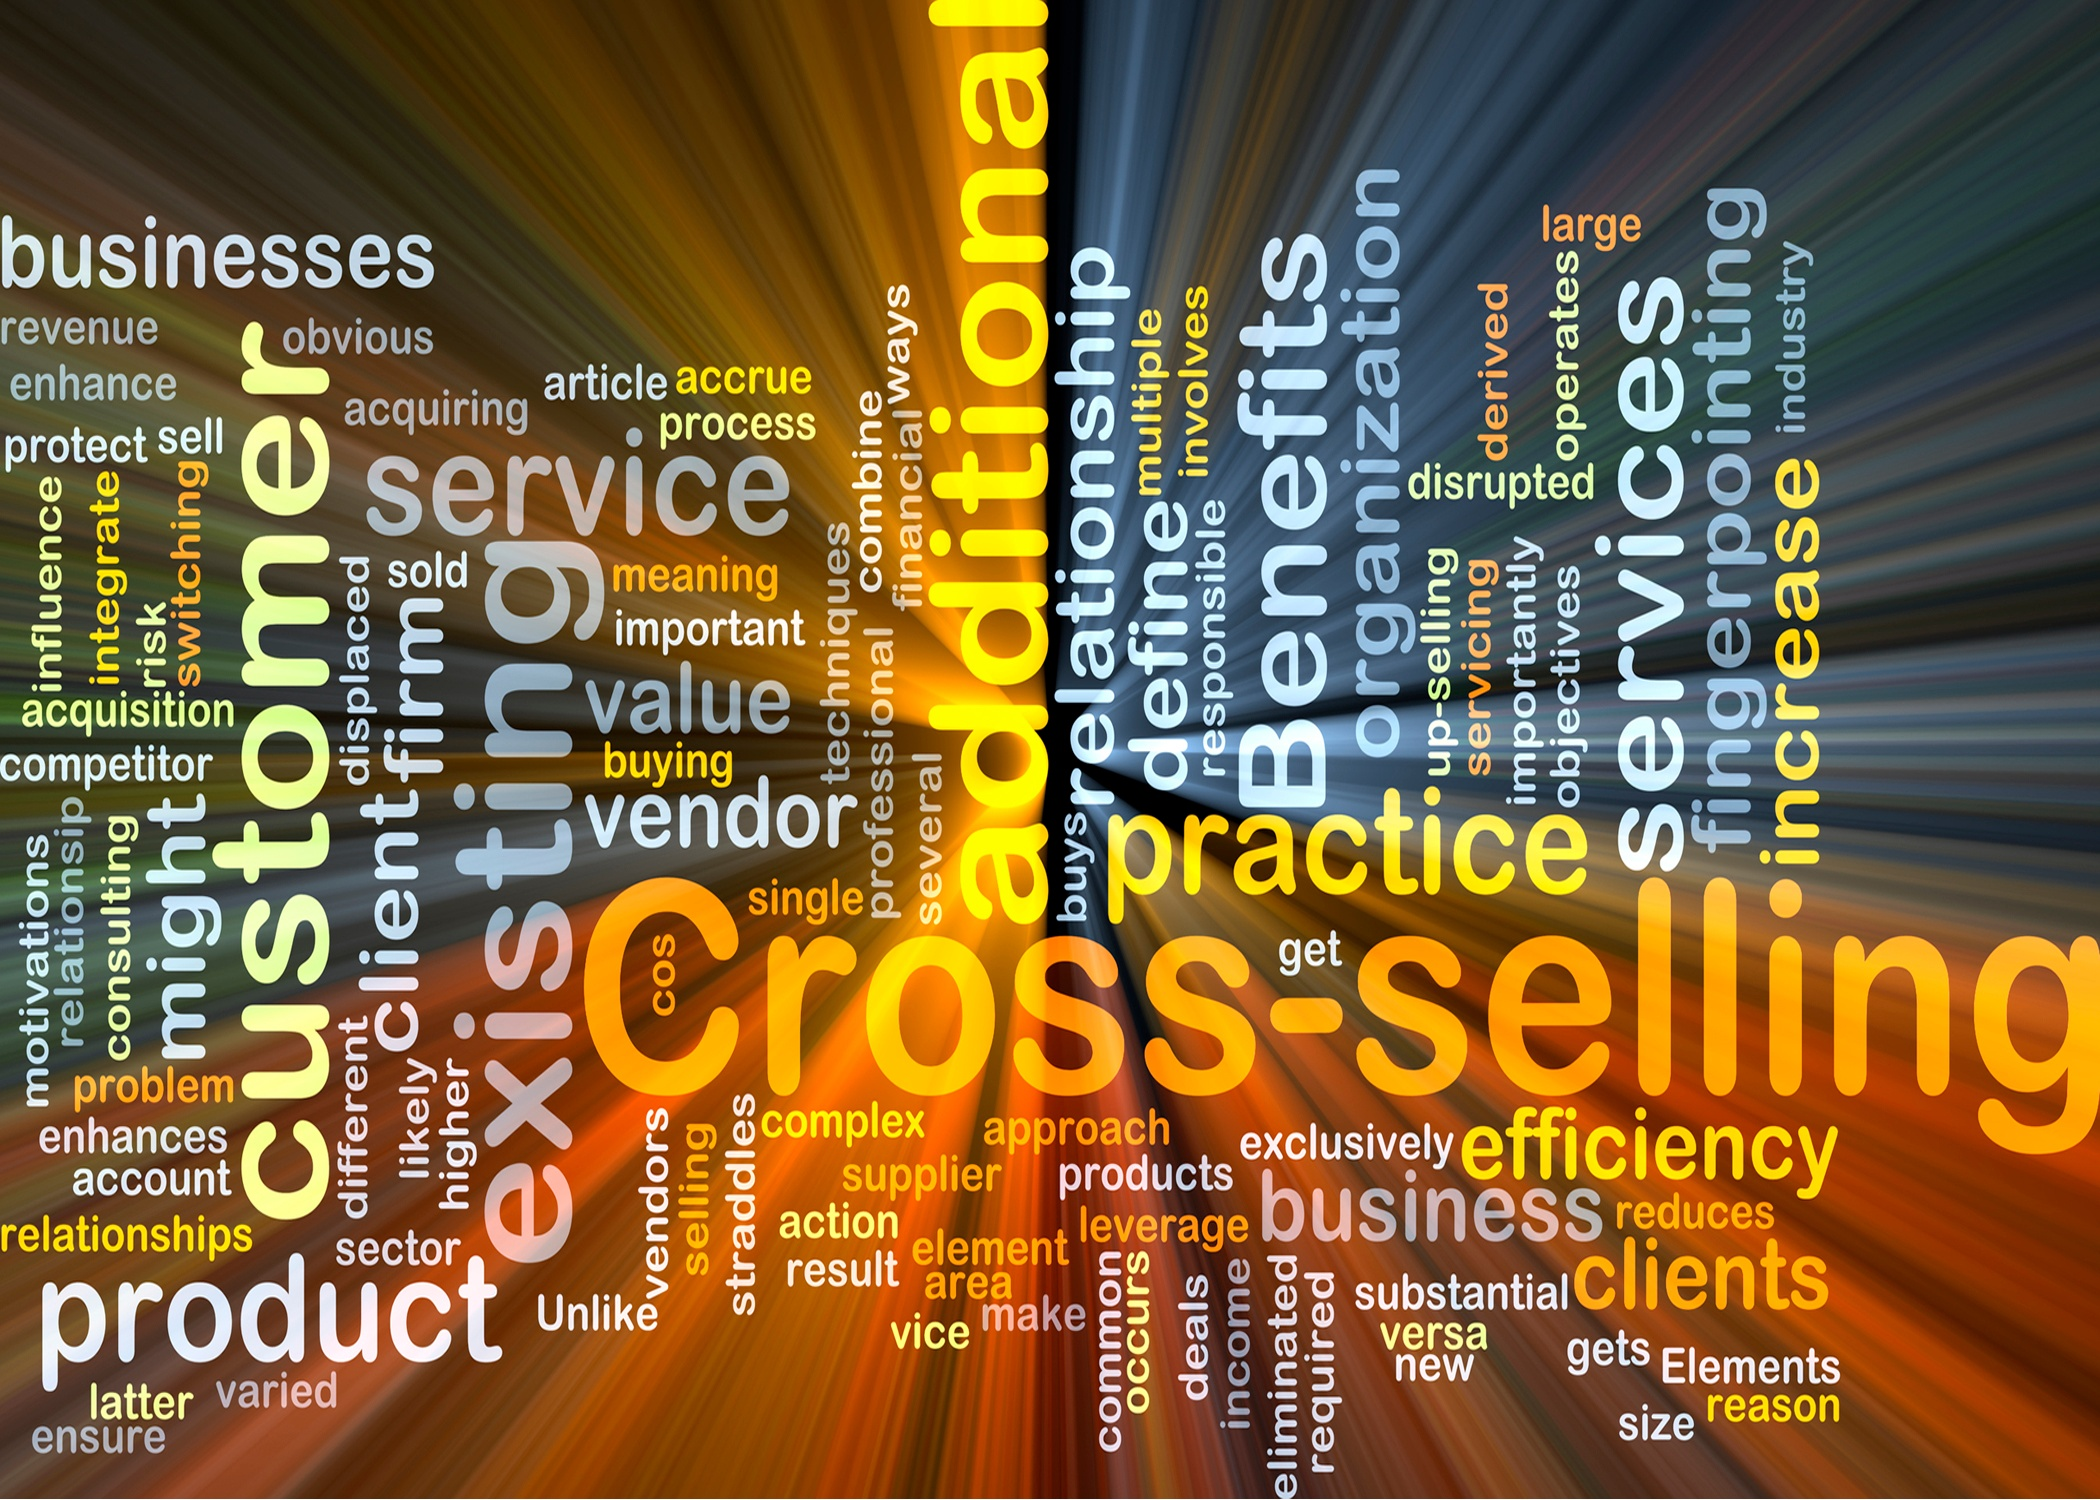 Learn-to-cross-sell-and-up-sell-efficiently.jpg